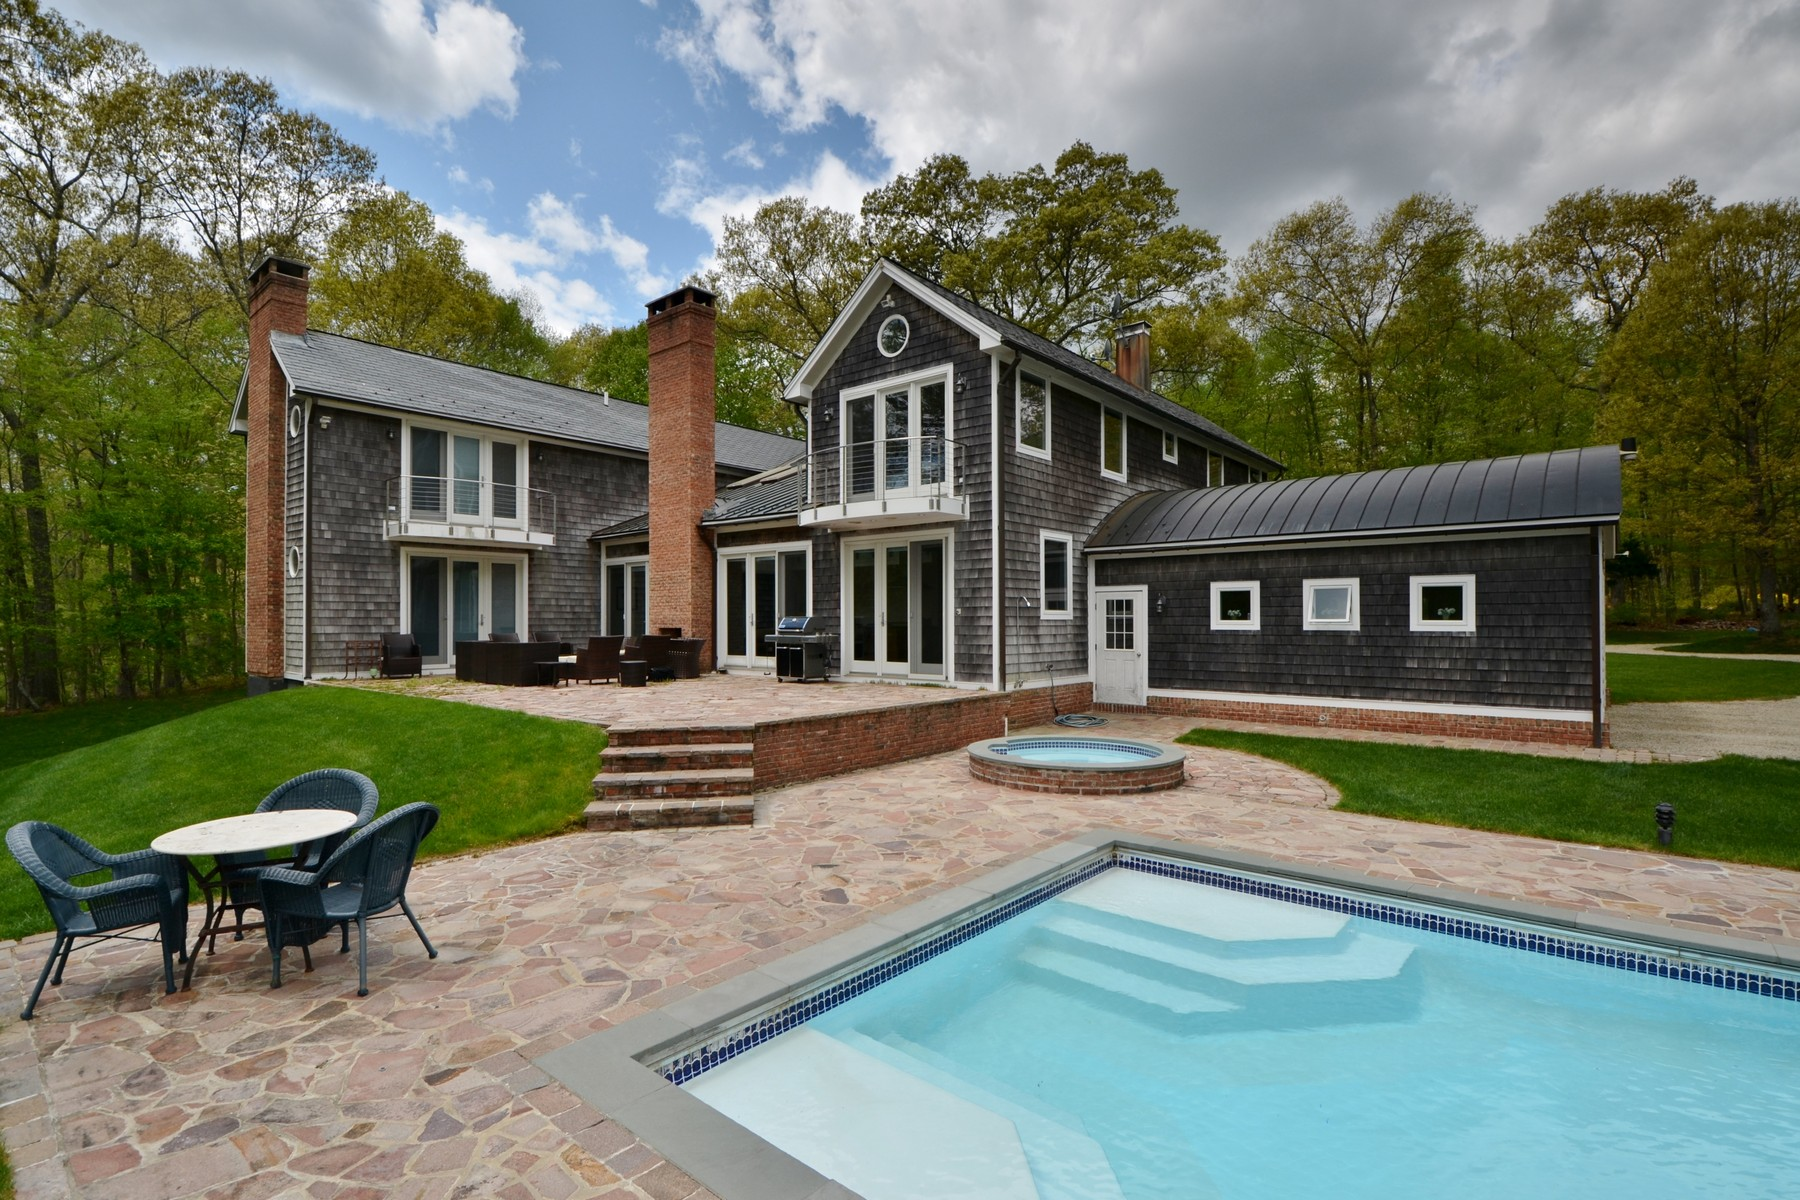 Single Family Home for Sale at Desirable Otter Cove Set On 2.71 Acres 36 Otter Cove Dr Old Saybrook, Connecticut, 06475 United States